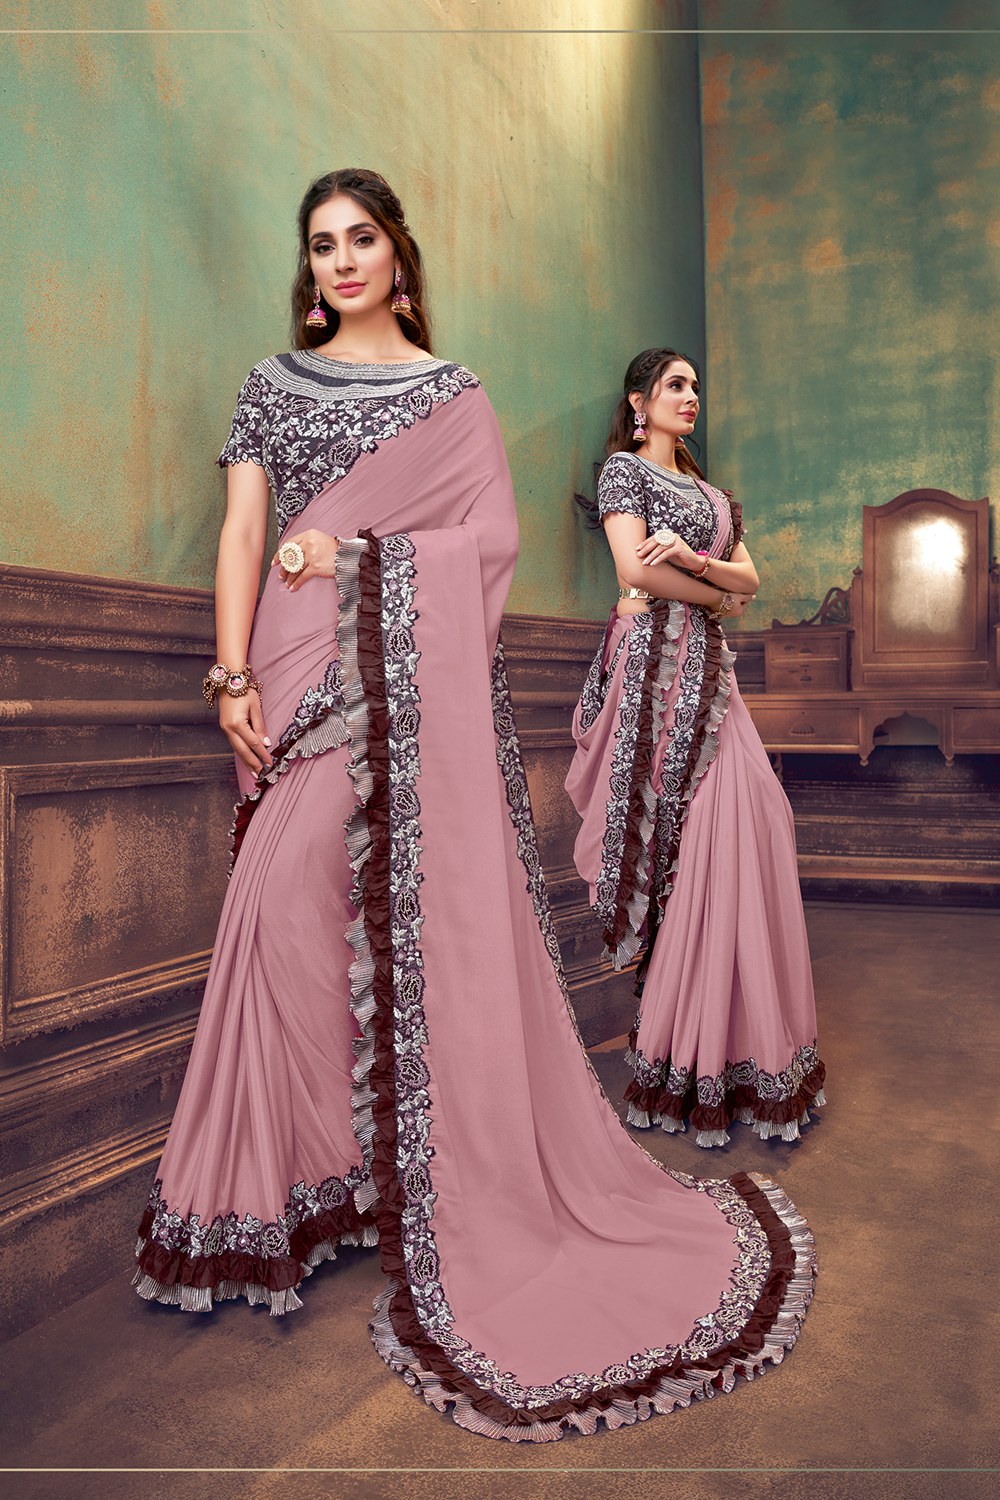 The undeniable charm of soft shades of peach and pink   with the goodness of exquisite machine embroidery and touch of cut-daana hand work is carefully crafted by our designer to make every women who wears this look trendy  stunning and different fro